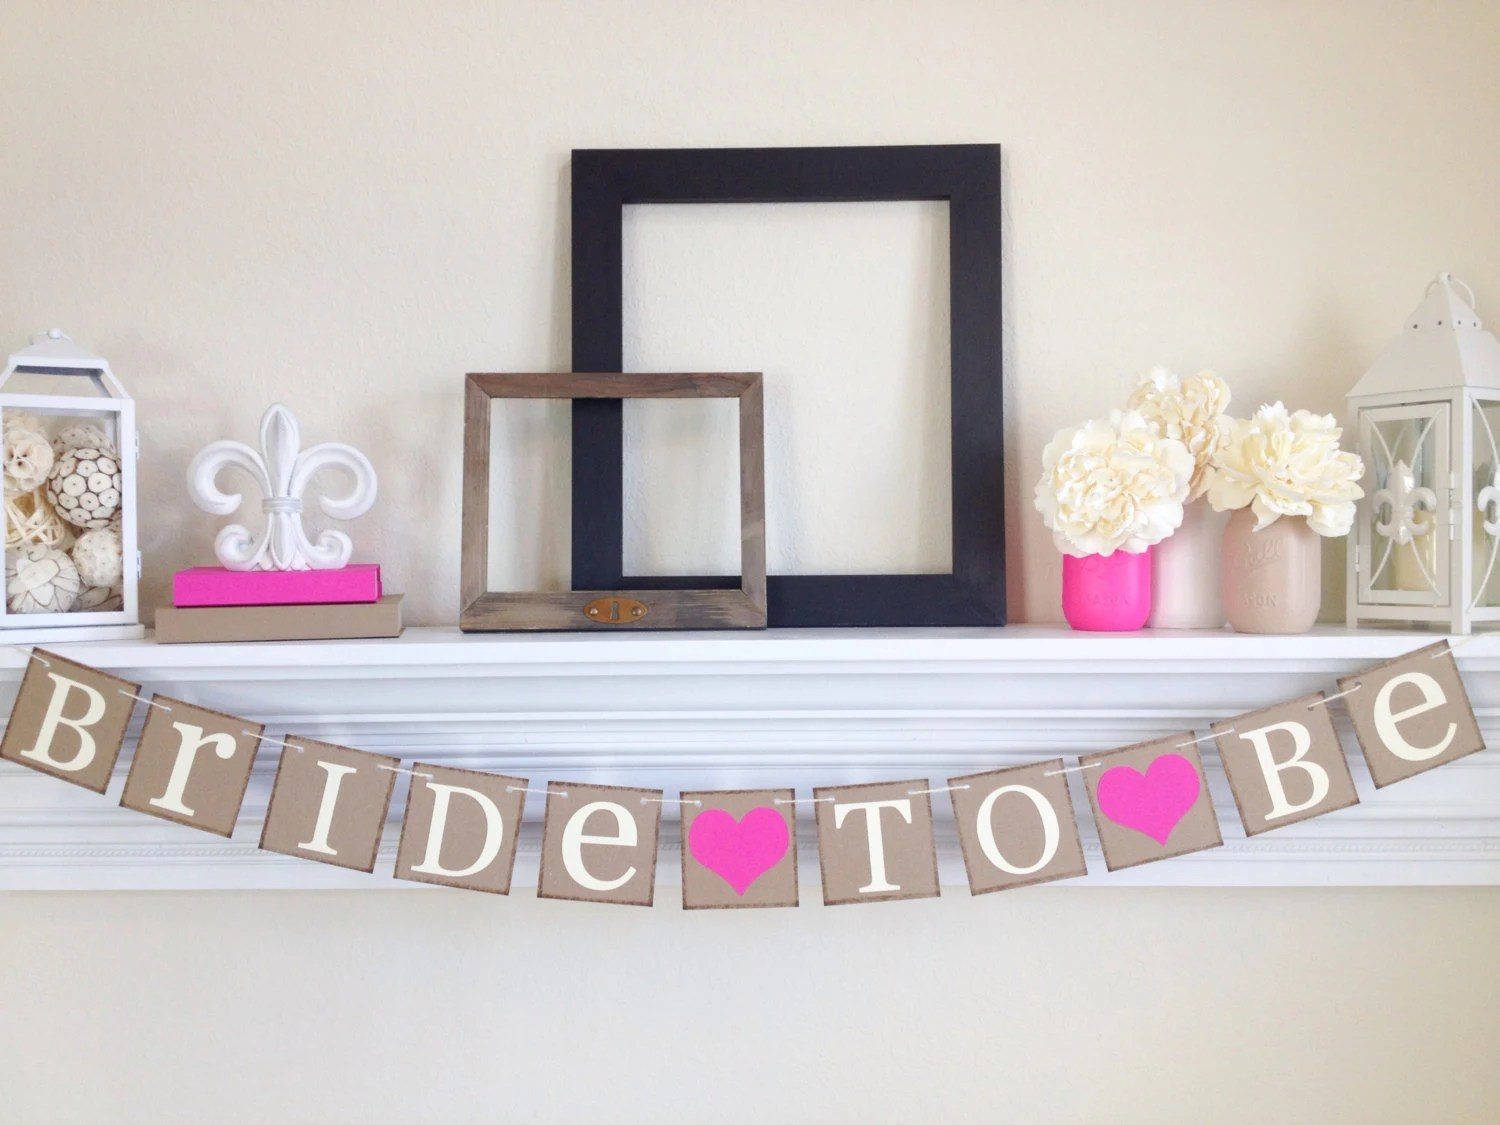 Amazing Bridal Shower Banners Bridal Shower Banners Wedding Shower Decorations Diy Bridal Shower Decorations Diy wedding Wedding Shower Decorations